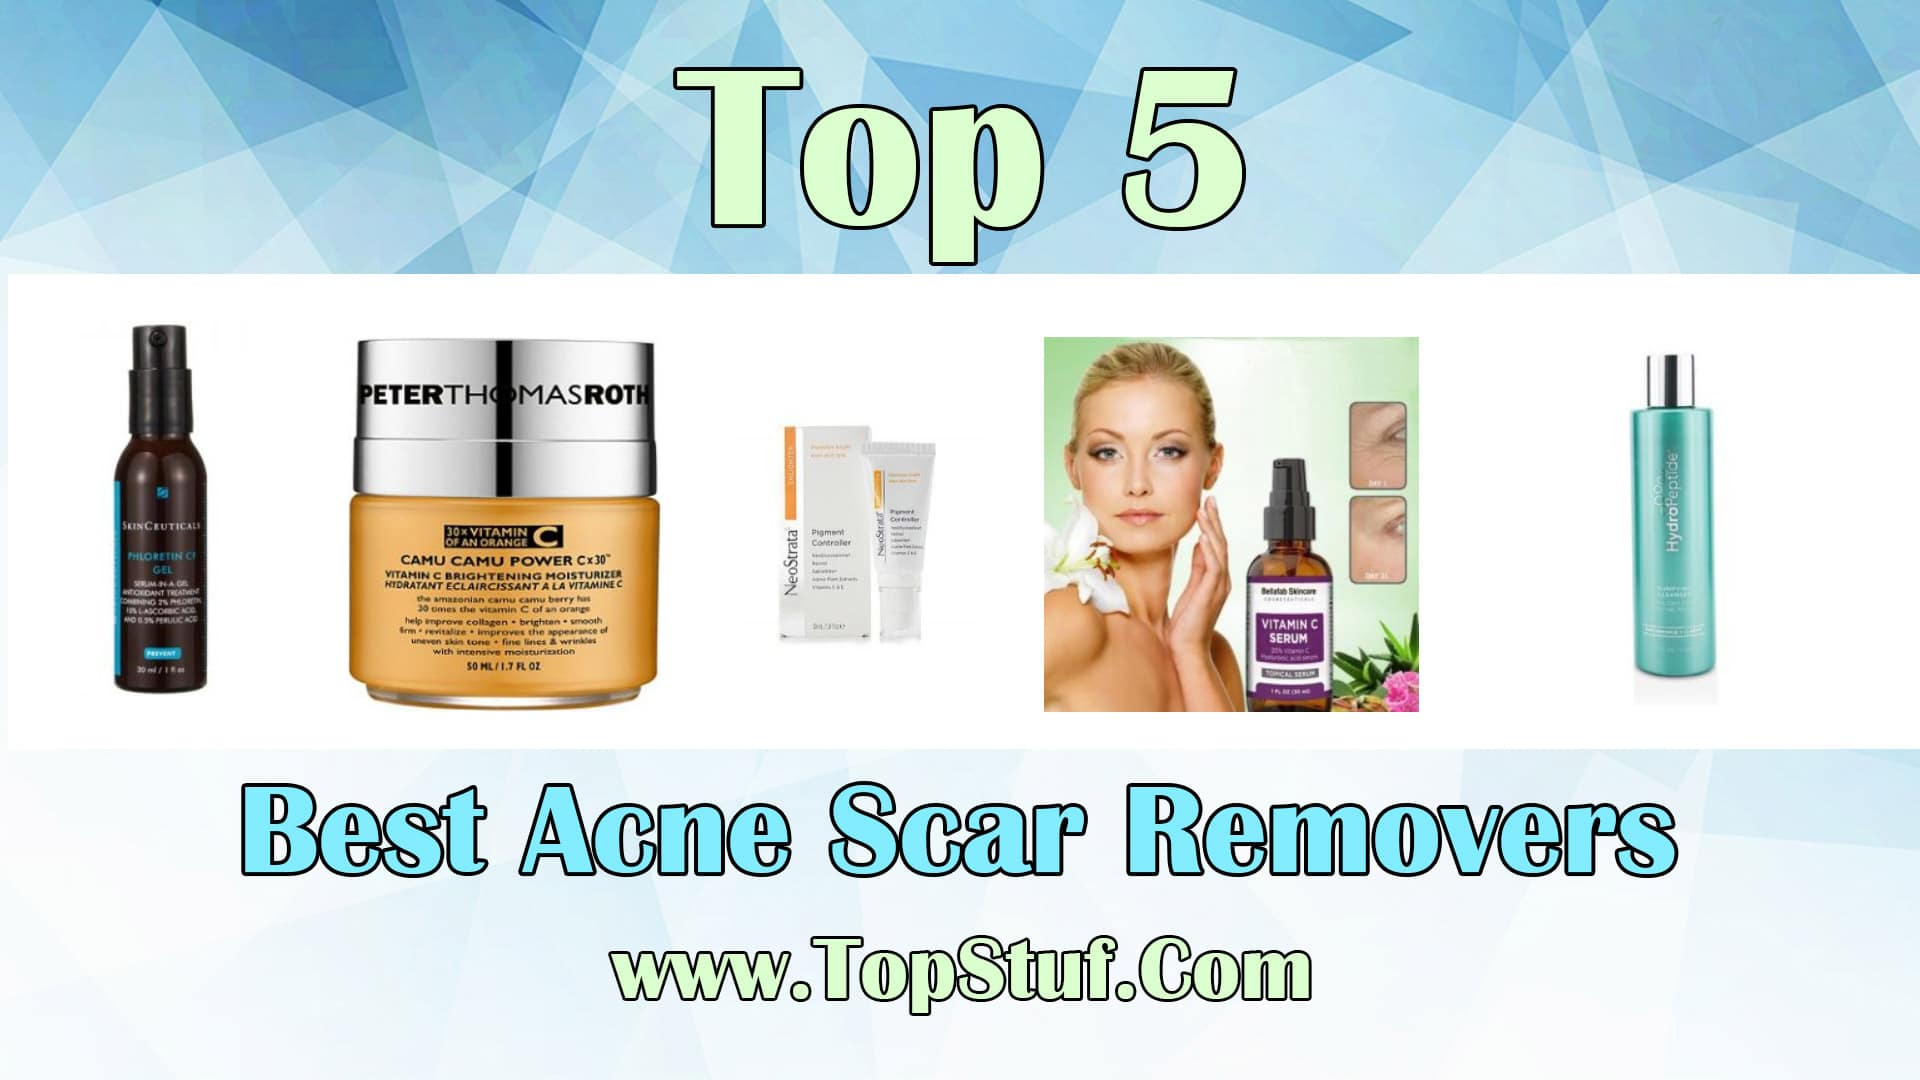 Acne Scar Removers